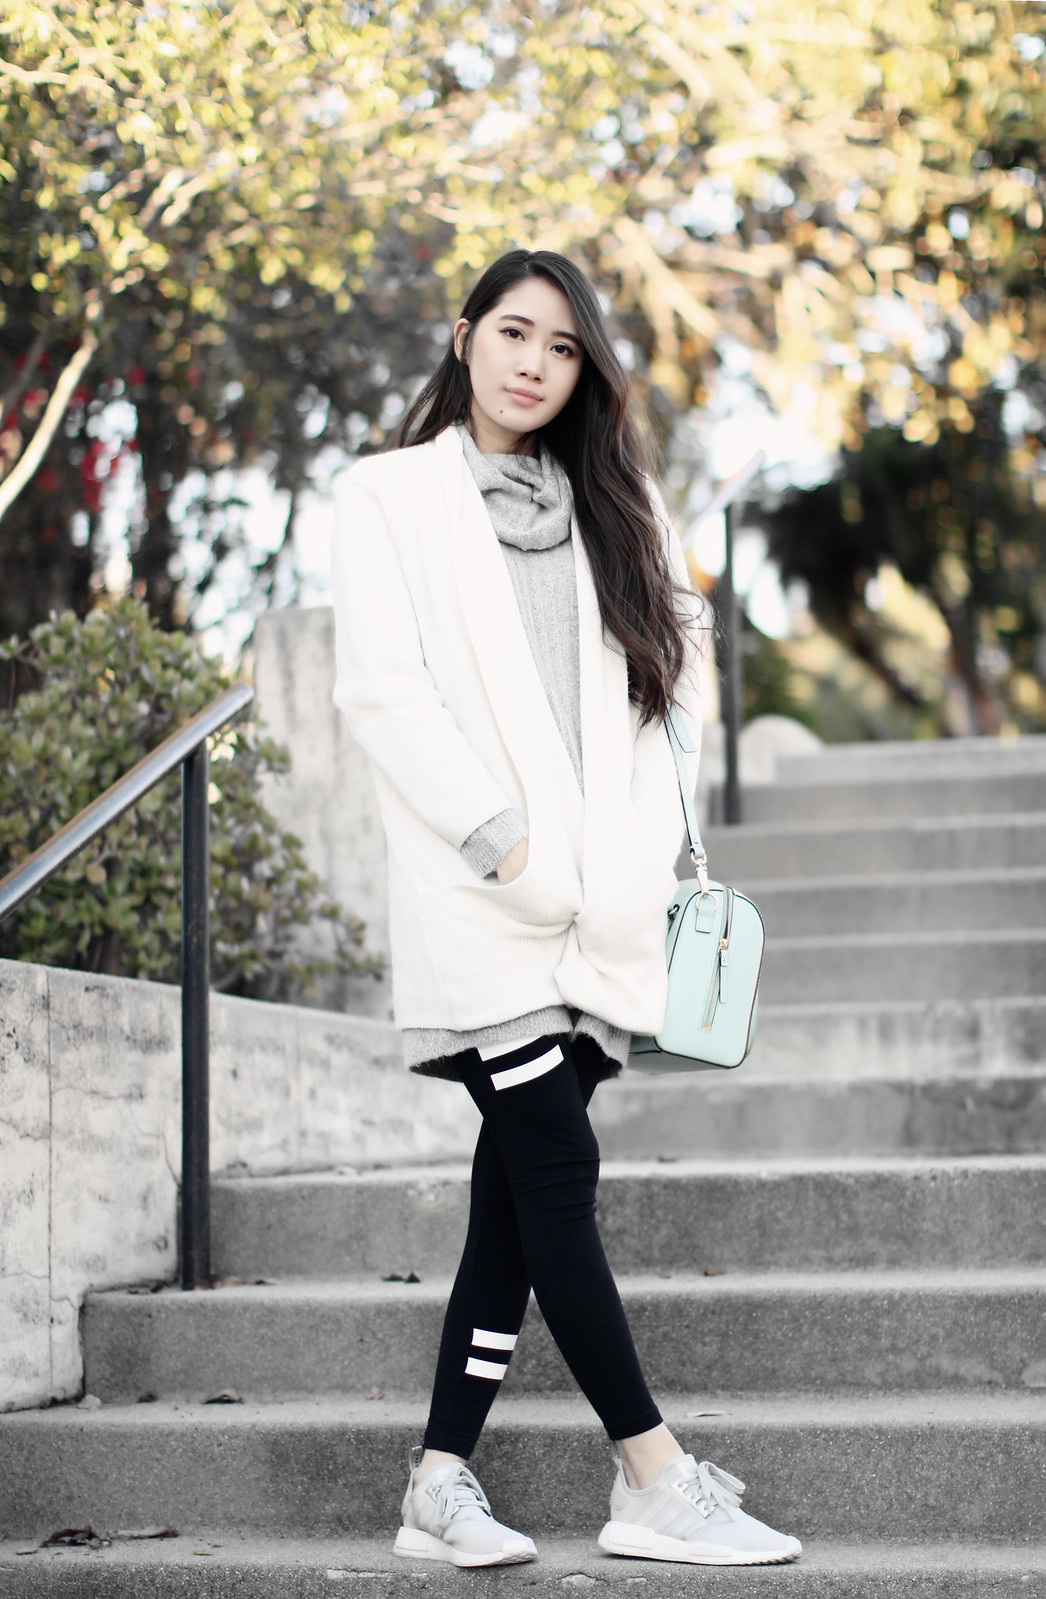 1532-ootd-fashion-style-tobi-cowl-neck-turtleneck-sweater-dress-asianfashion-koreanfashion-winterfashion-clothestoyouuu-elizabeeetht